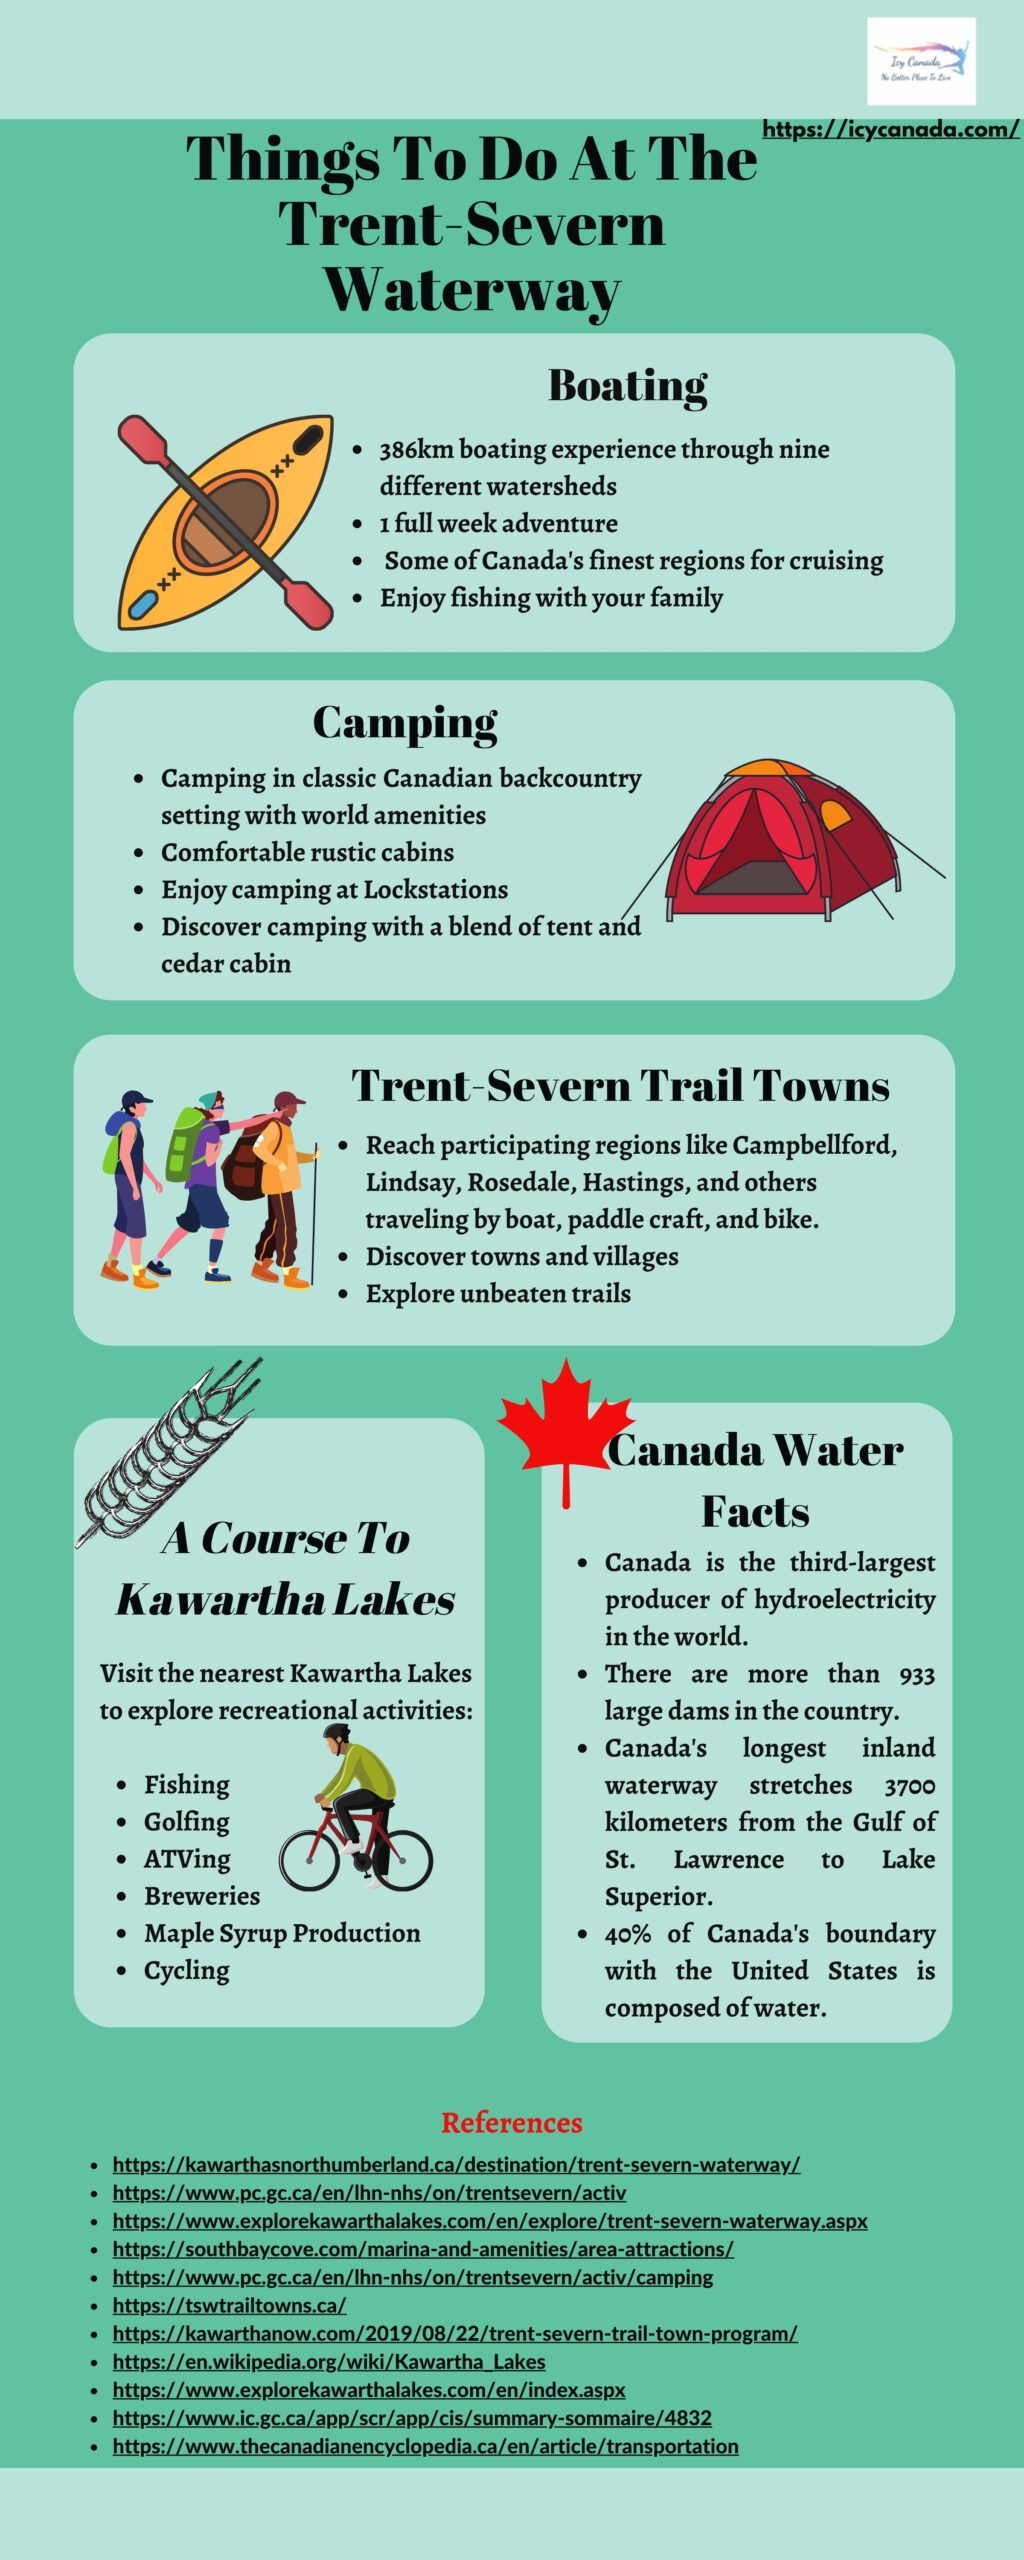 Things To Do At Trent Severn